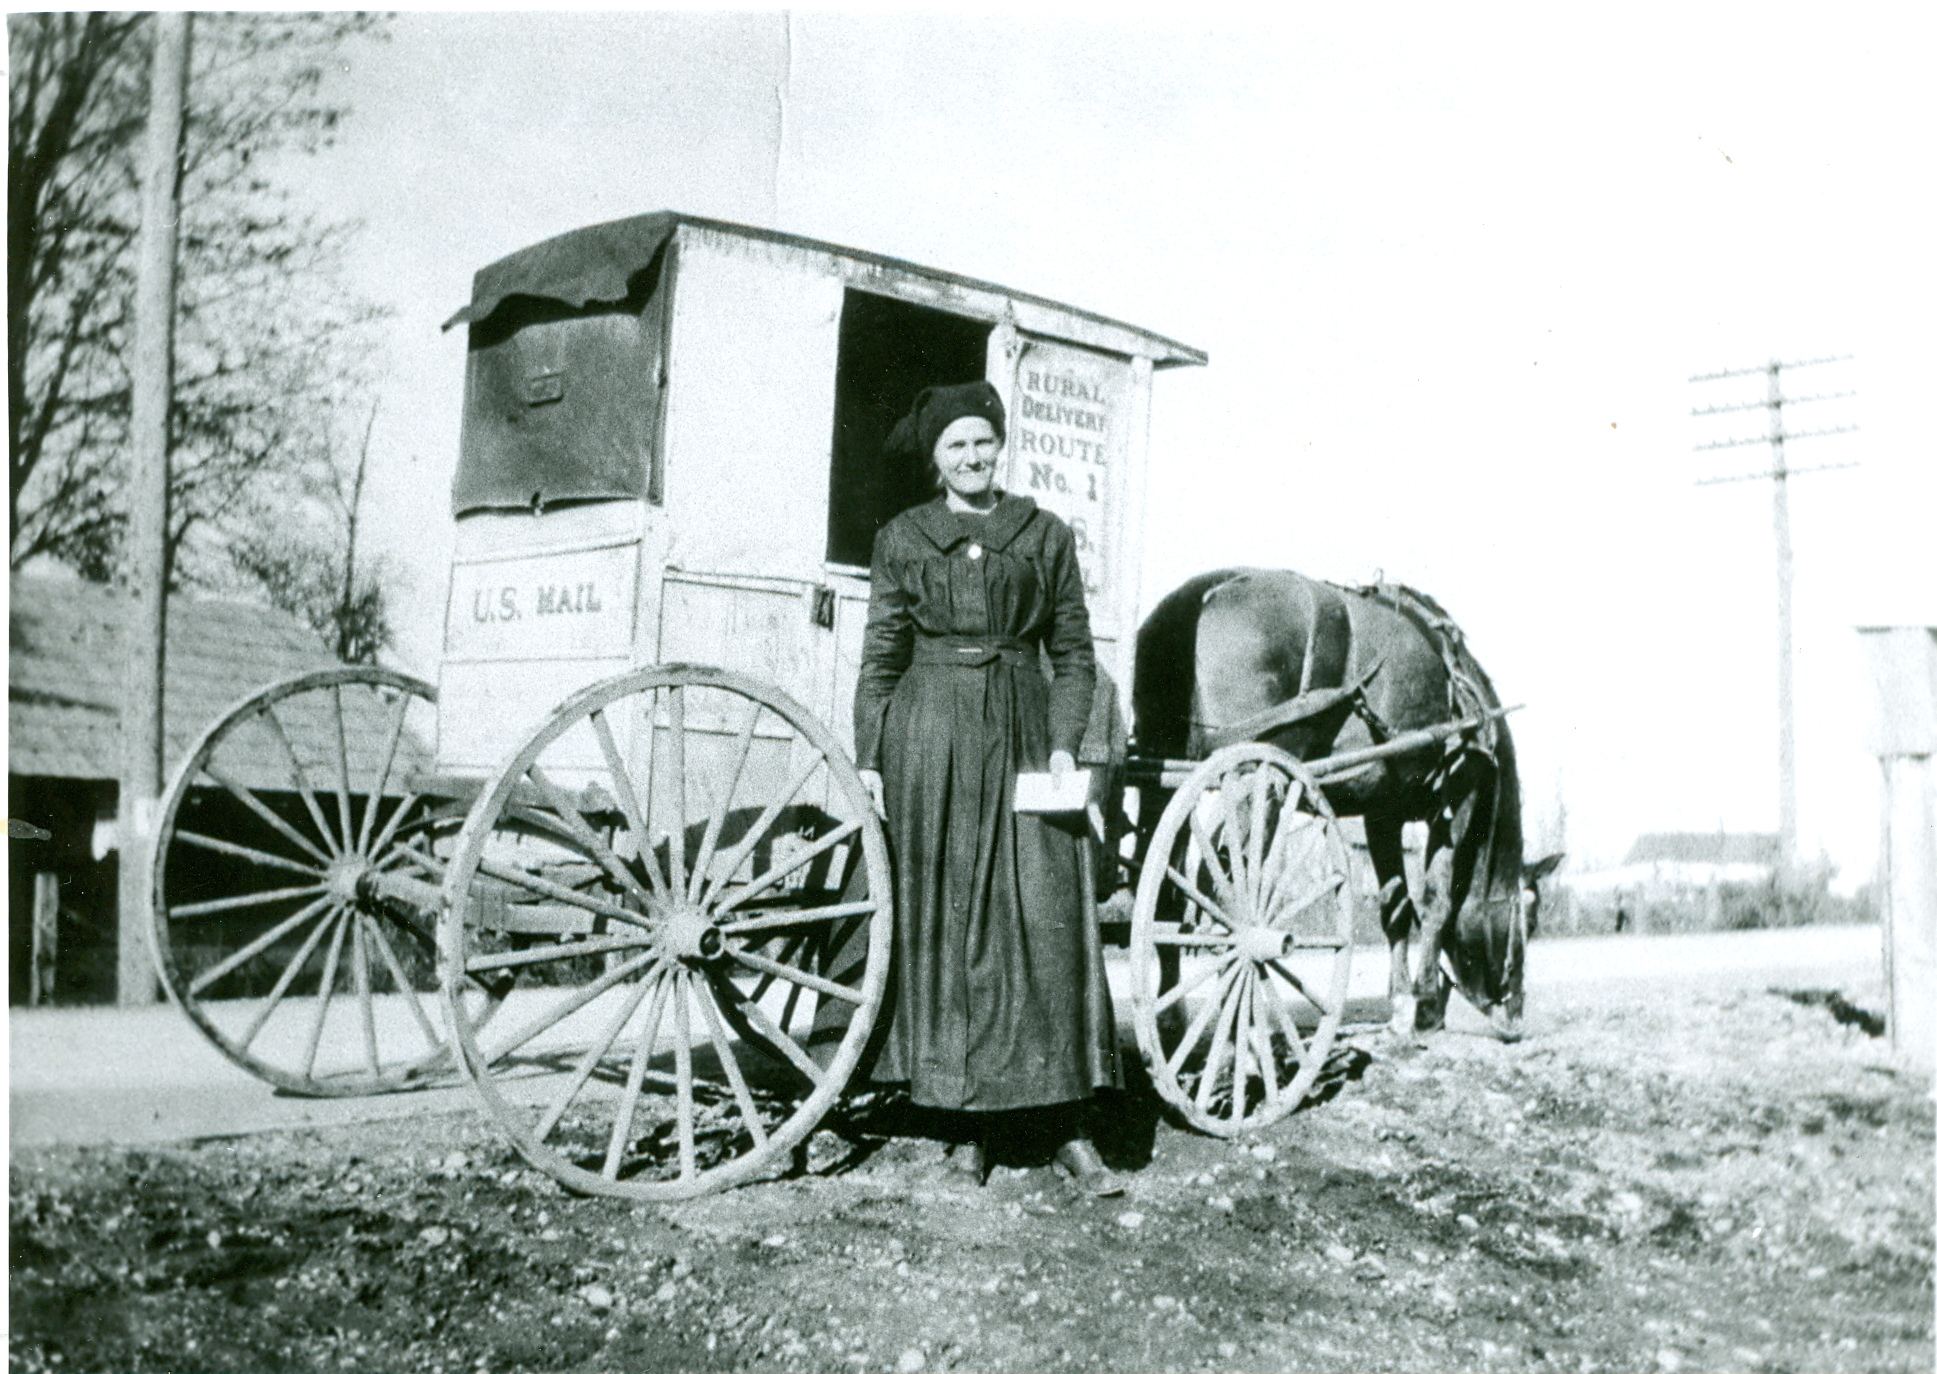 Alice Seaton delivering the U.S. Mail, around 1916